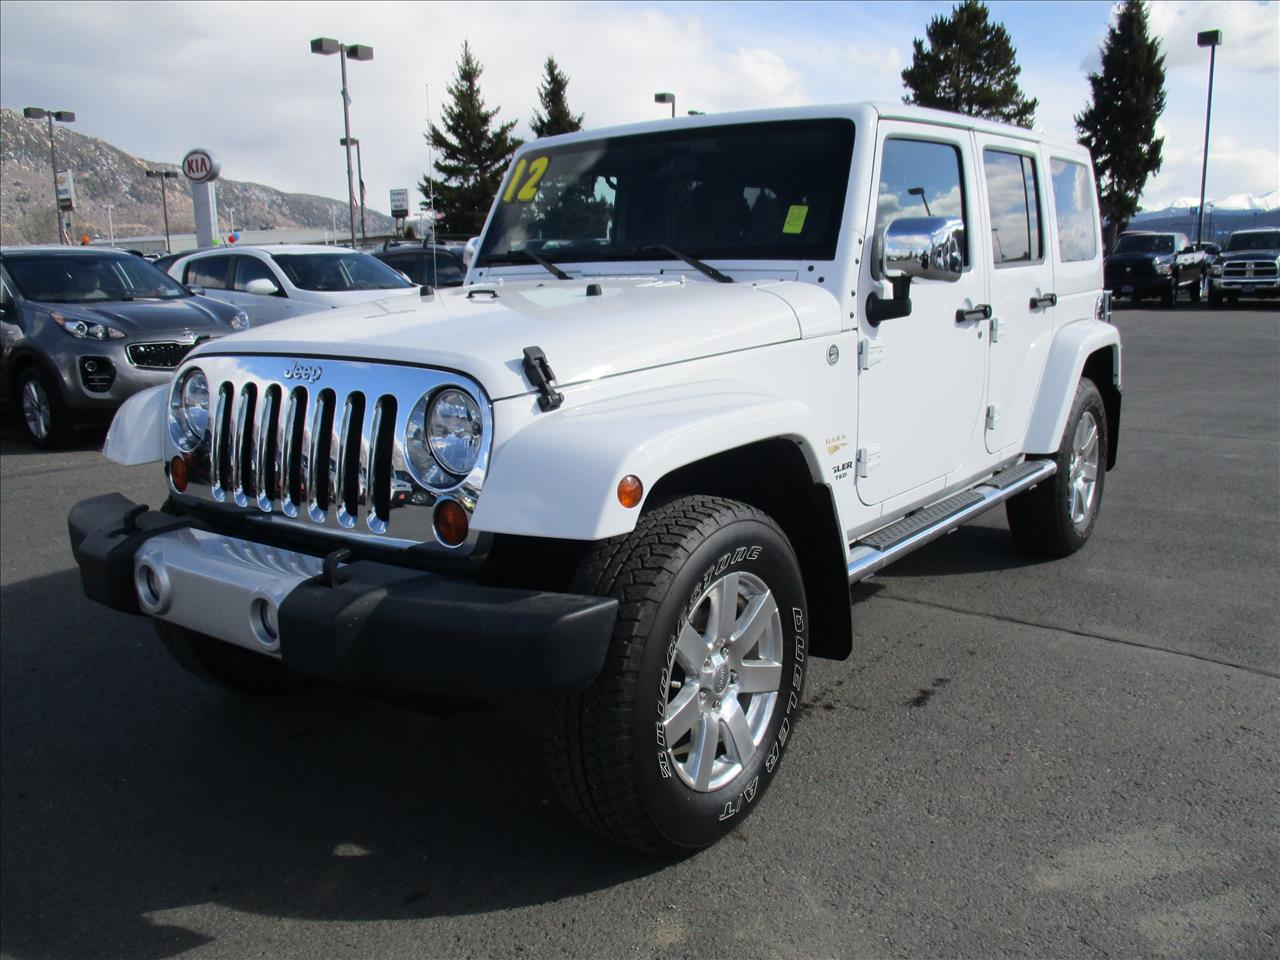 2012 jeep wrangler unlimited sahara 4x4 4dr suv in butte mt jeep montana. Black Bedroom Furniture Sets. Home Design Ideas